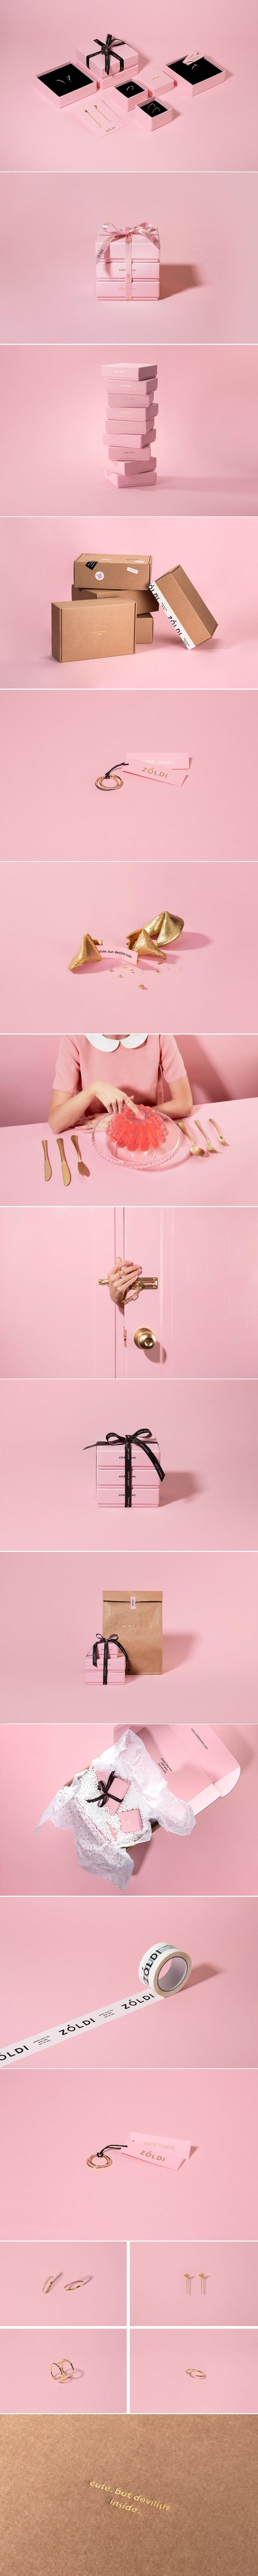 Meet ZÓLDI, The Jewelry Brand That Aims to Empower Women With Cute Packaging To Boot — The Dieline   Packaging & Branding Design & Innovation News